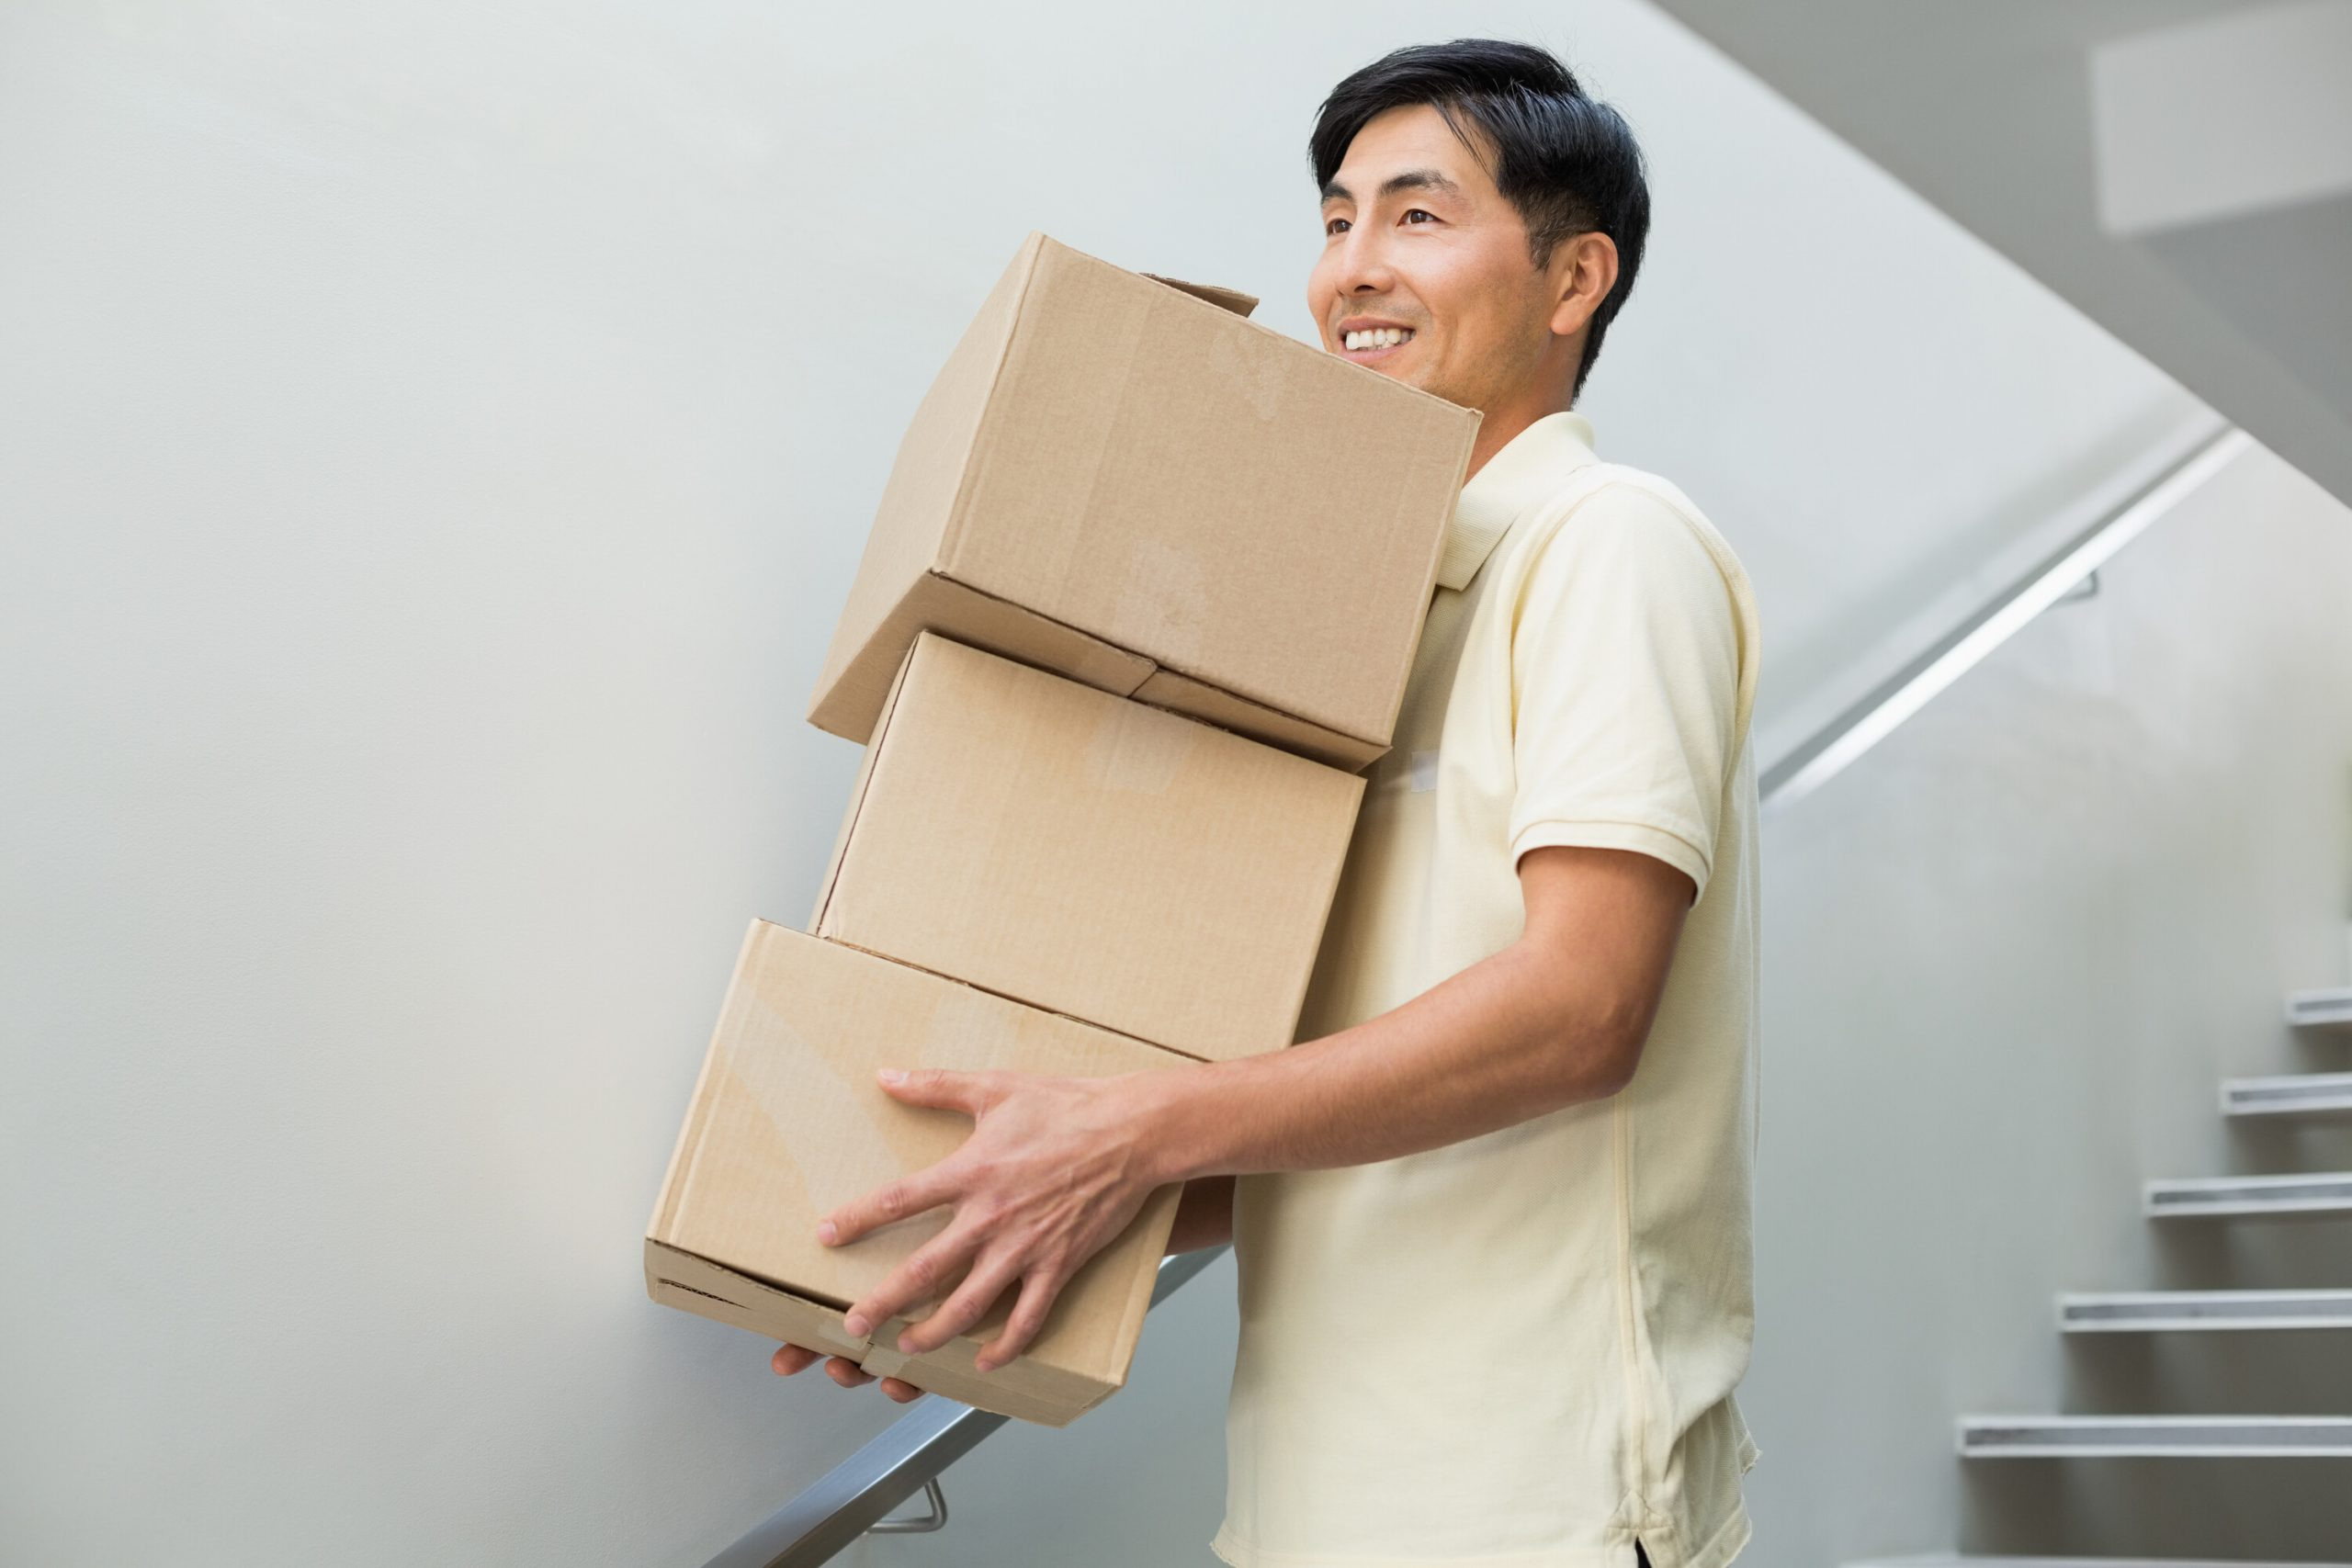 Man carrying moving boxes down steps